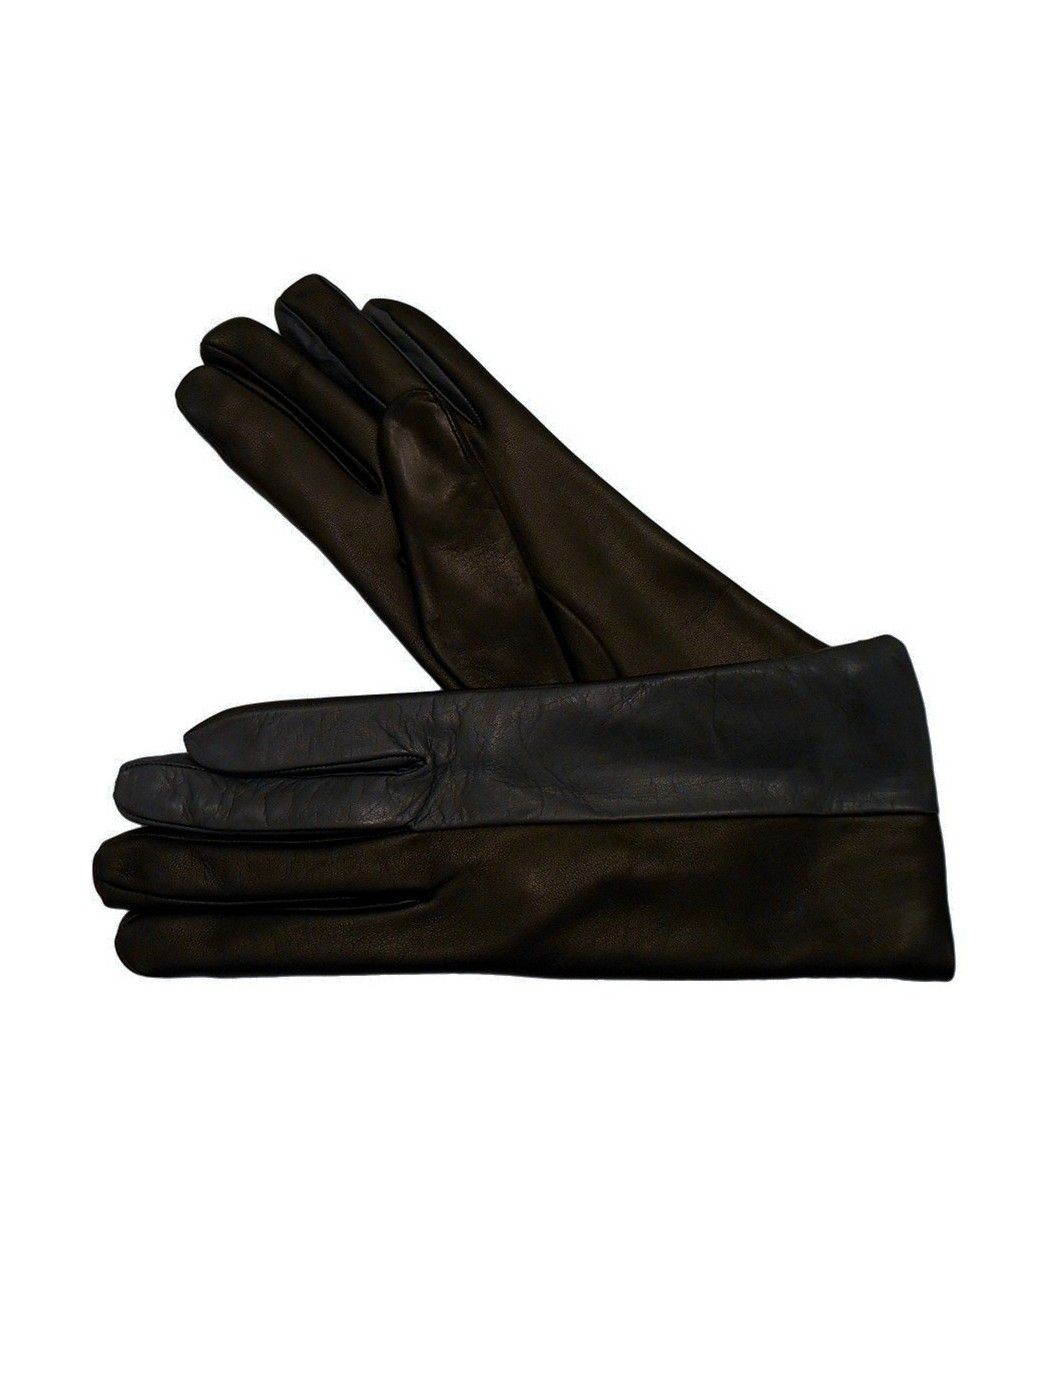 Two-coloured leather gloves